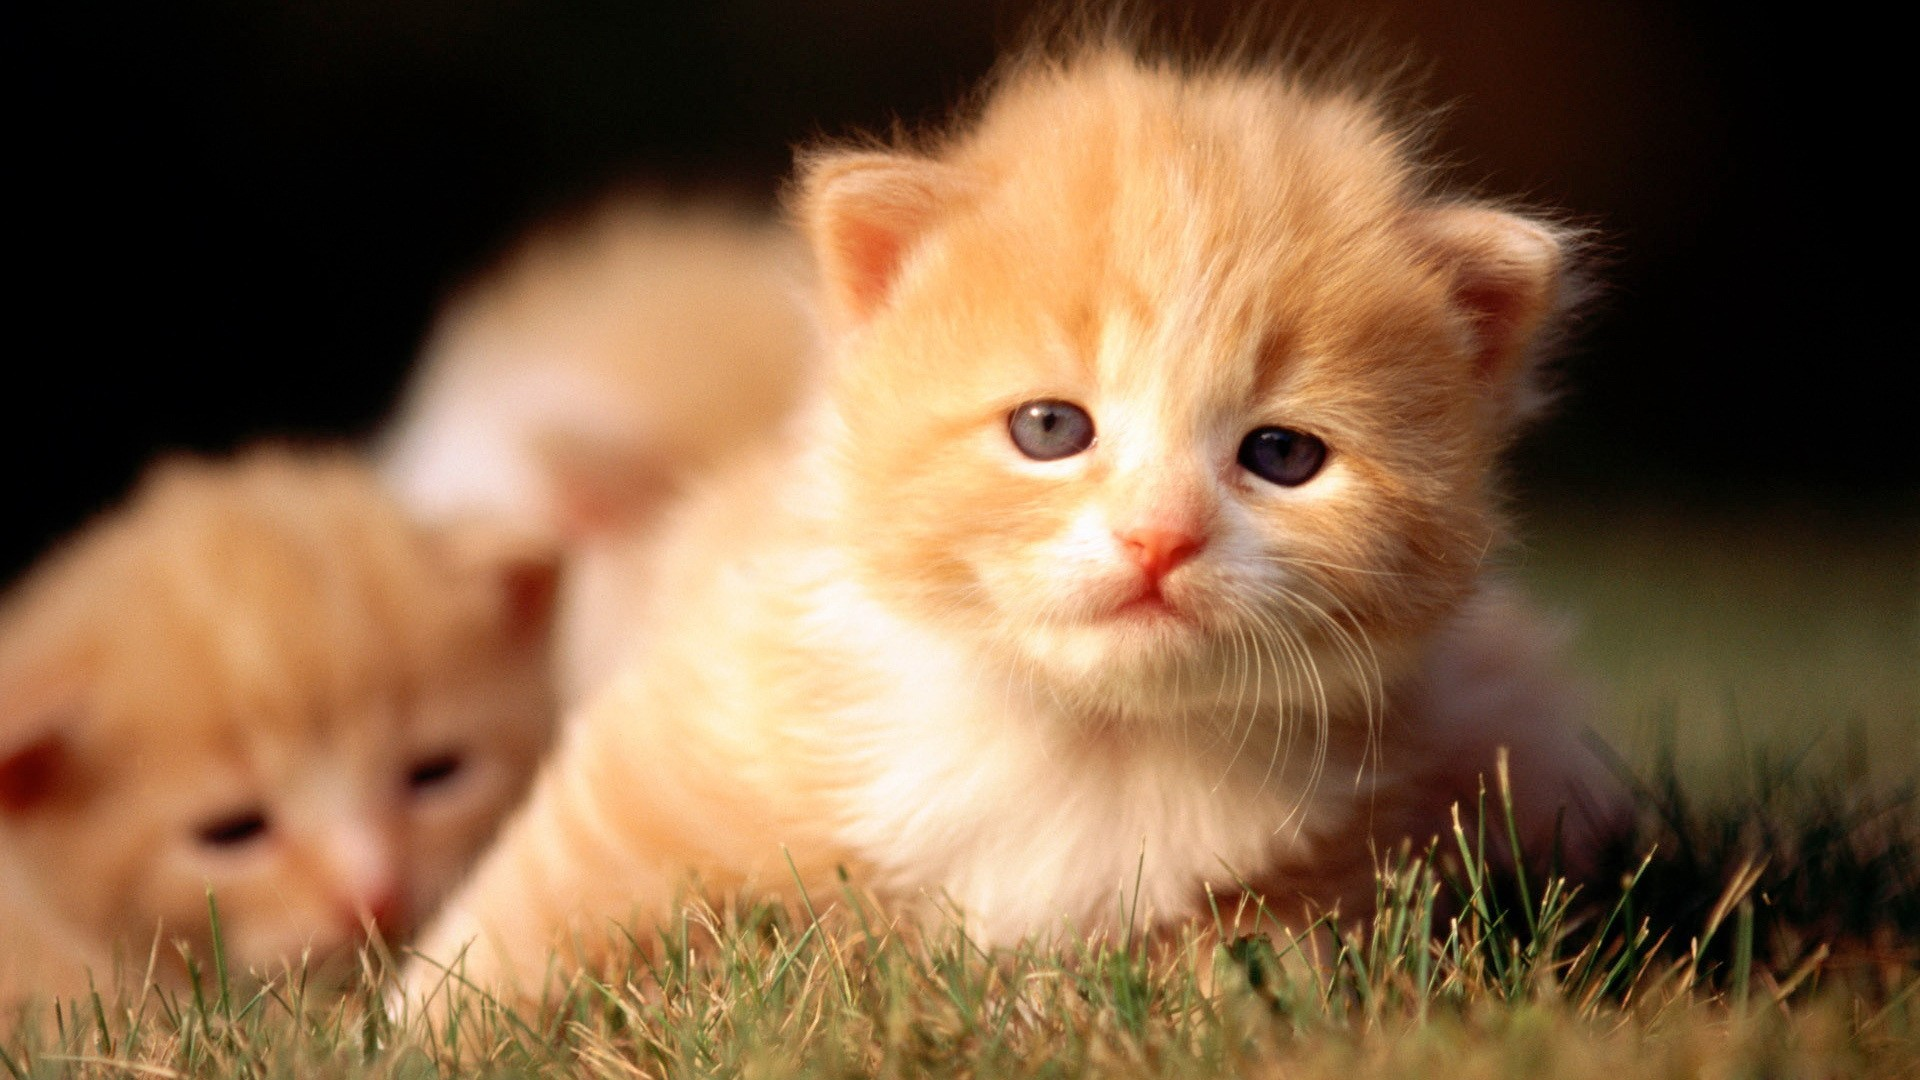 cats Kittens HD Wallpaper